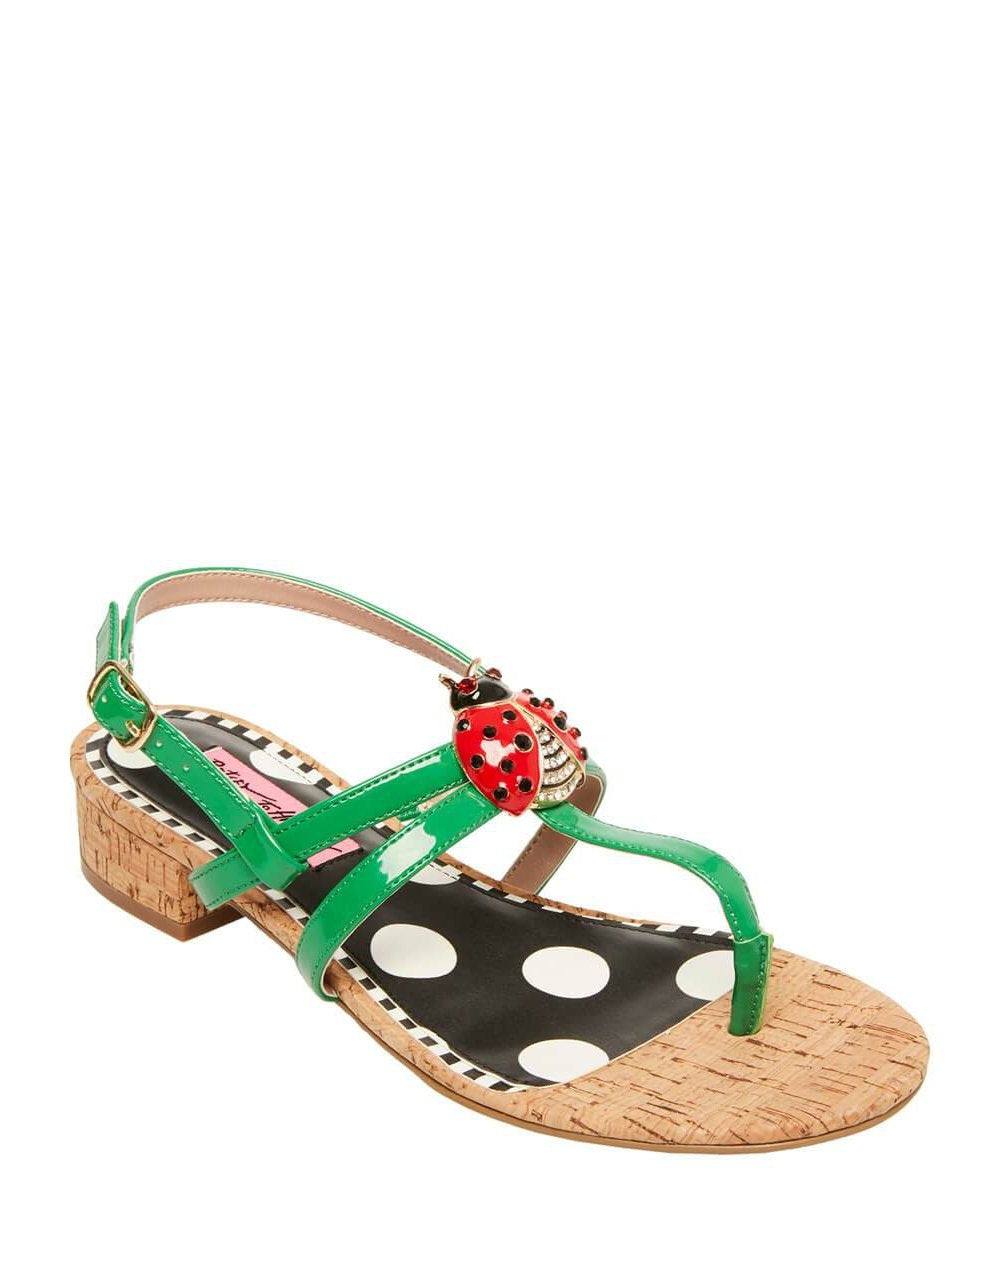 BUGGY NATURAL MULTI - SHOES - Betsey Johnson